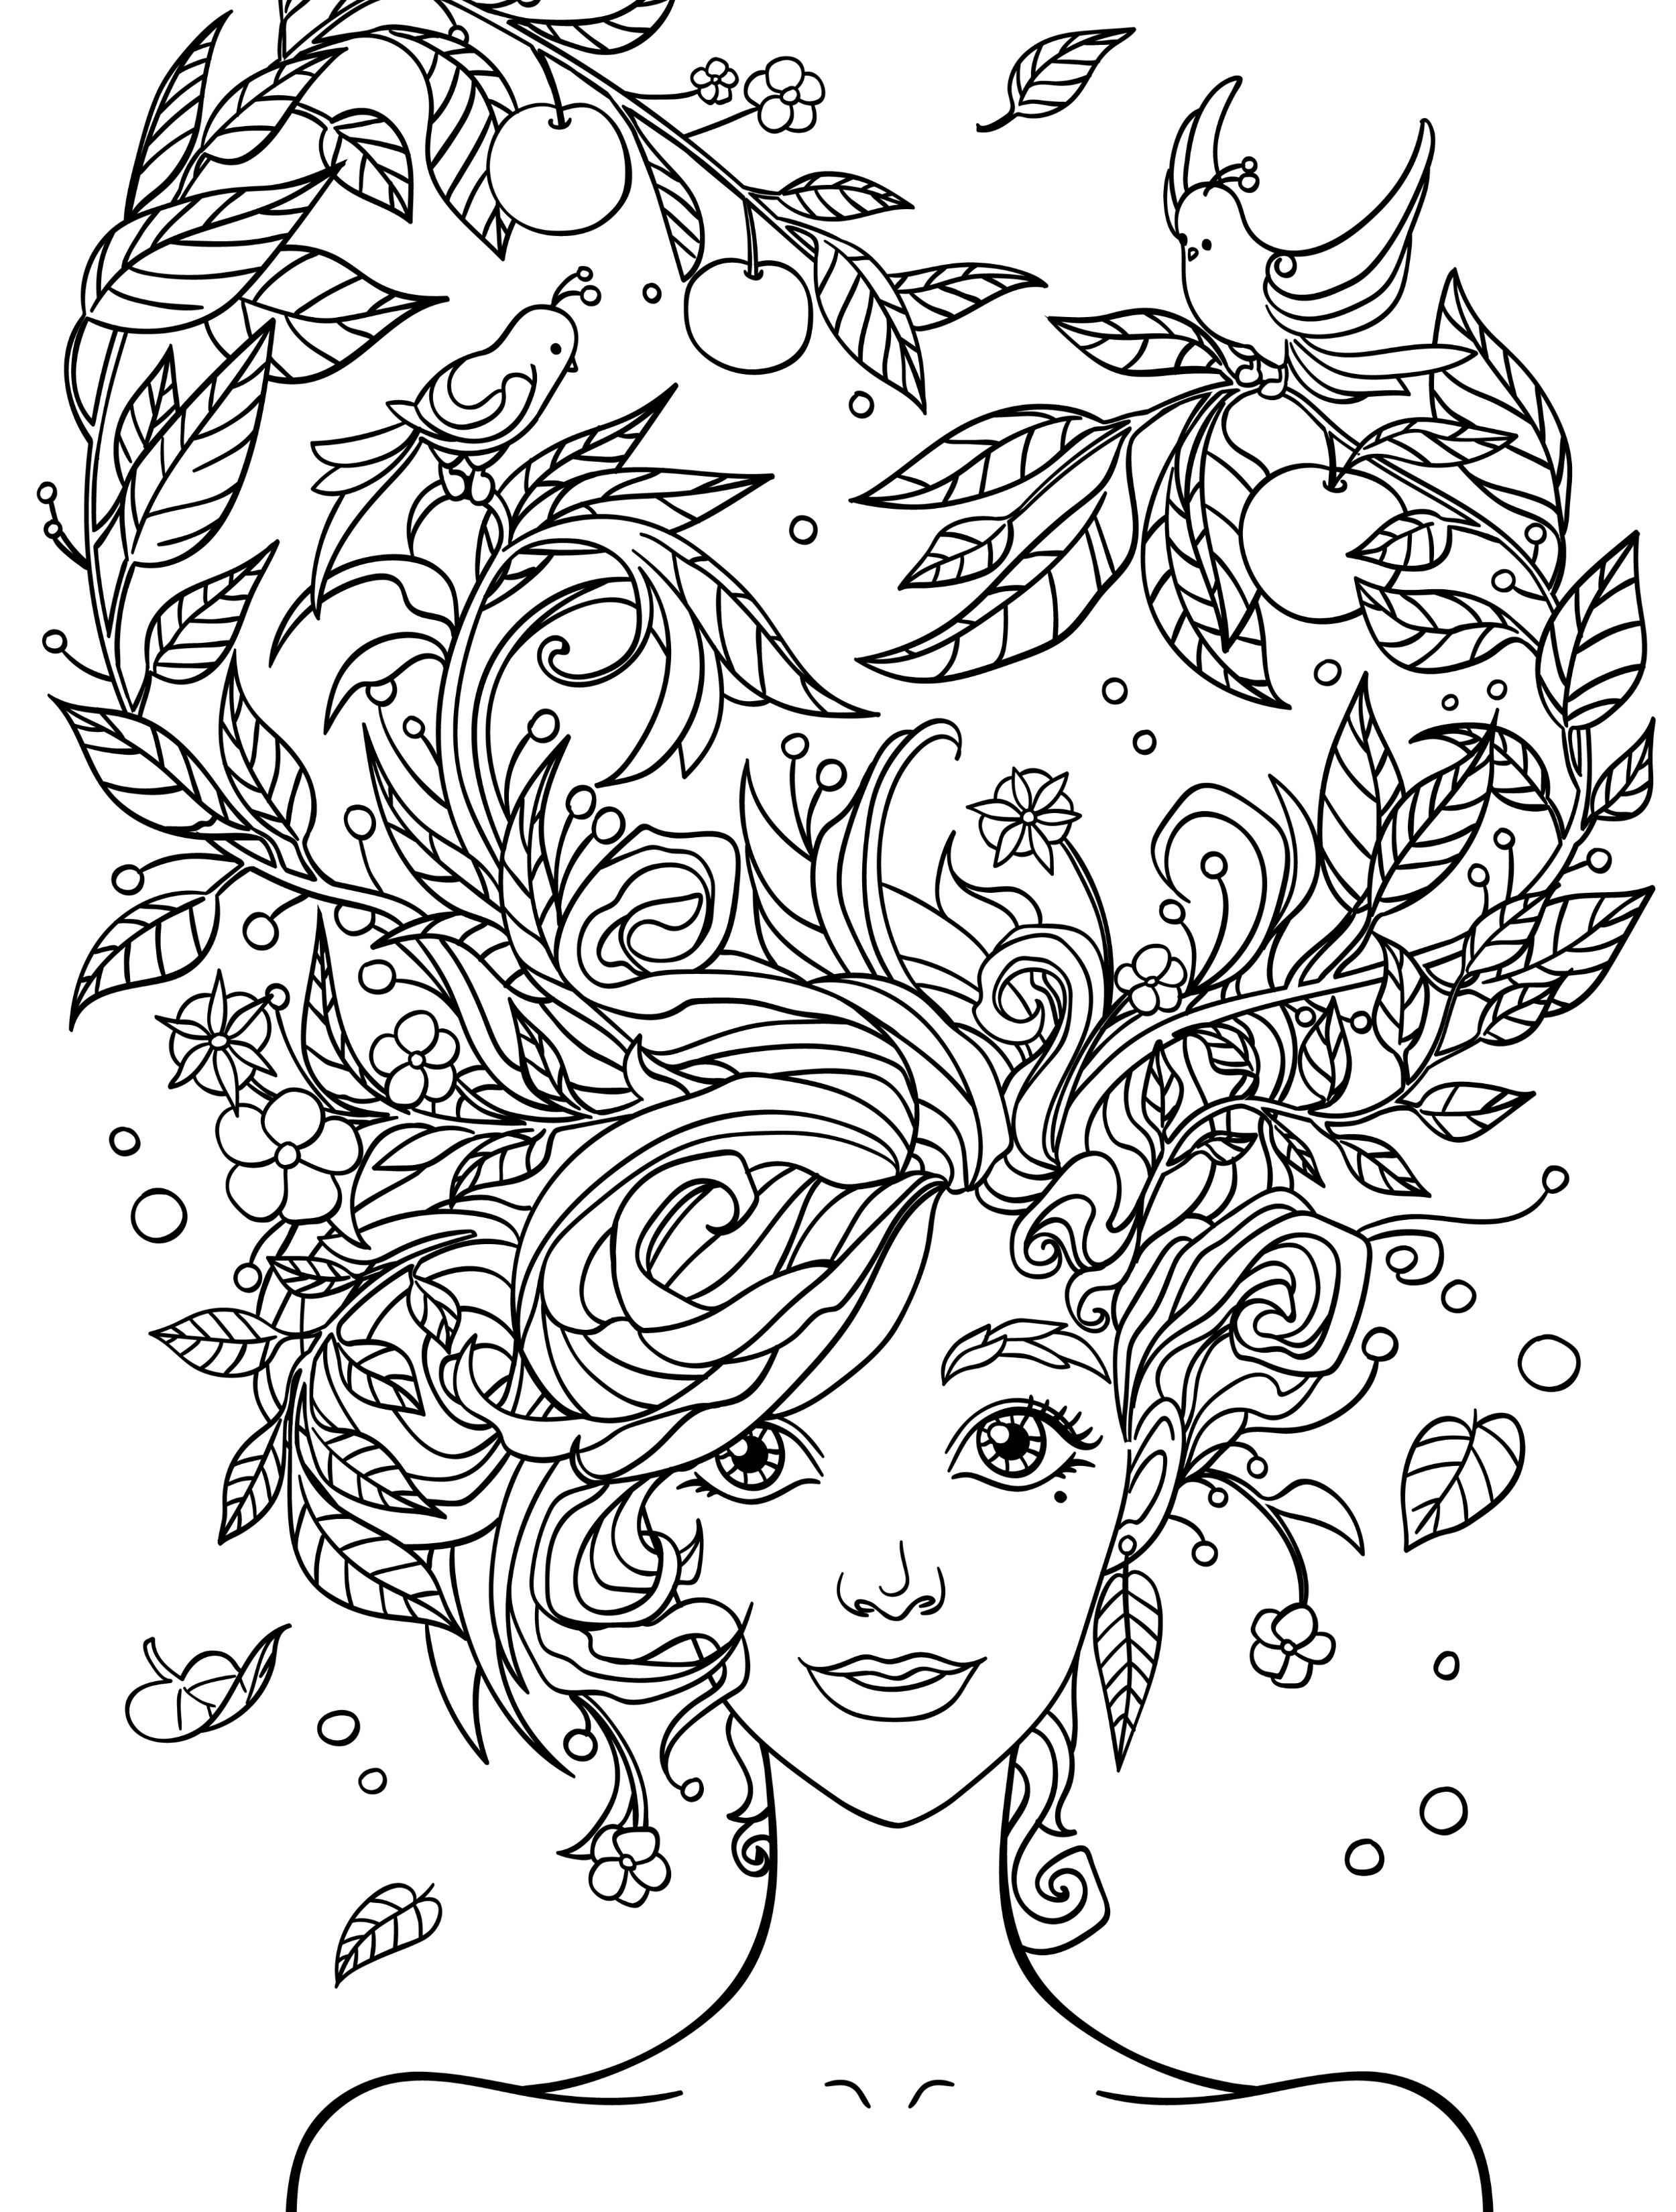 pretty coloring pages for adults free printable | Doodle | Pinterest ...